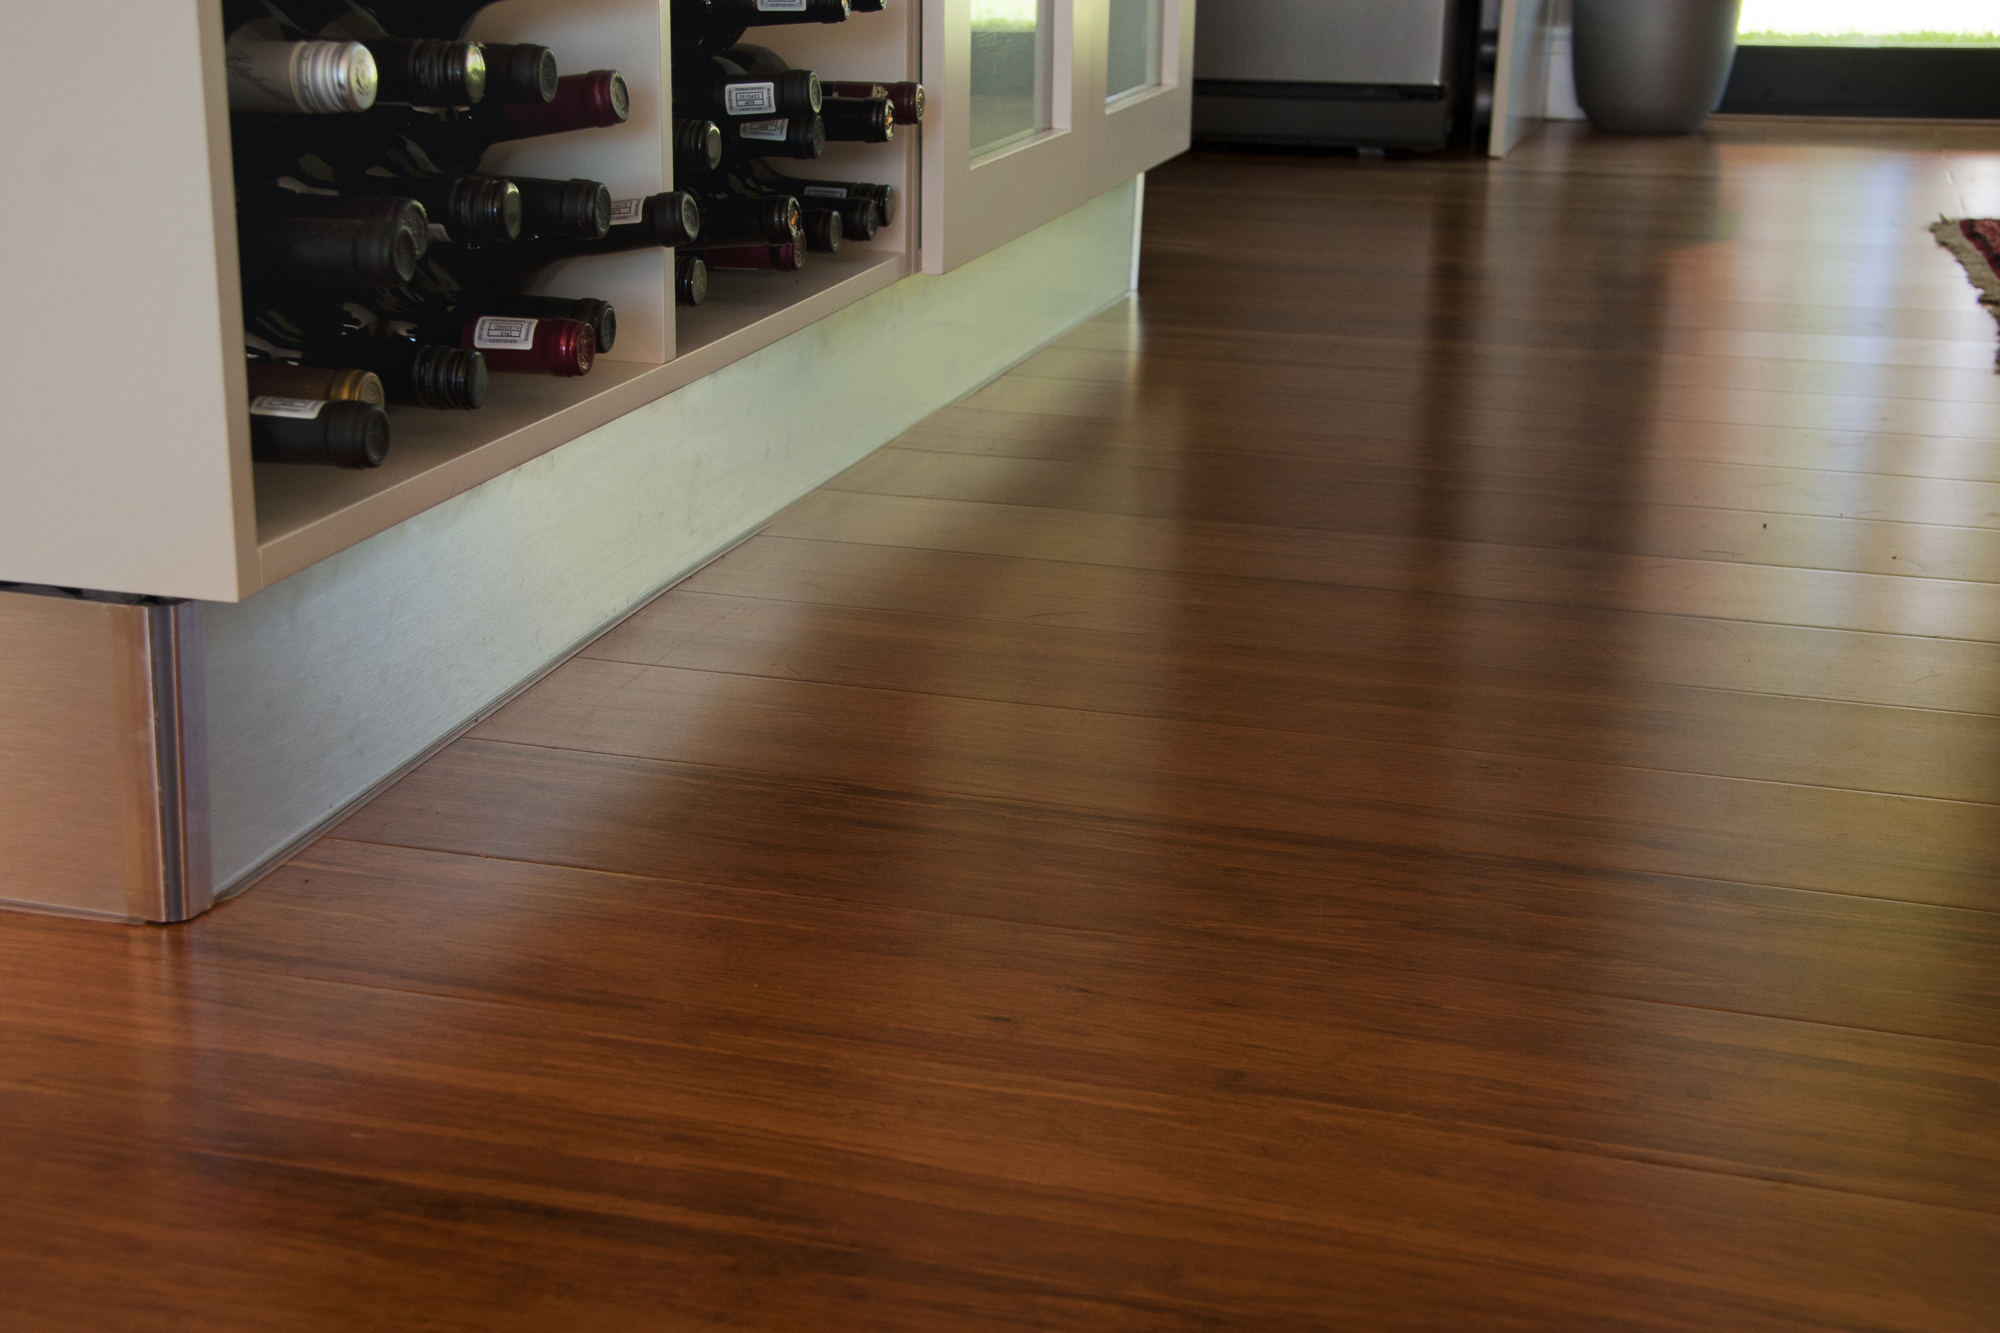 Brightfields - Strand Woven Bamboo flooring is available as a floating installation with a self-locking system which requires no nailing, gluing or stapling.